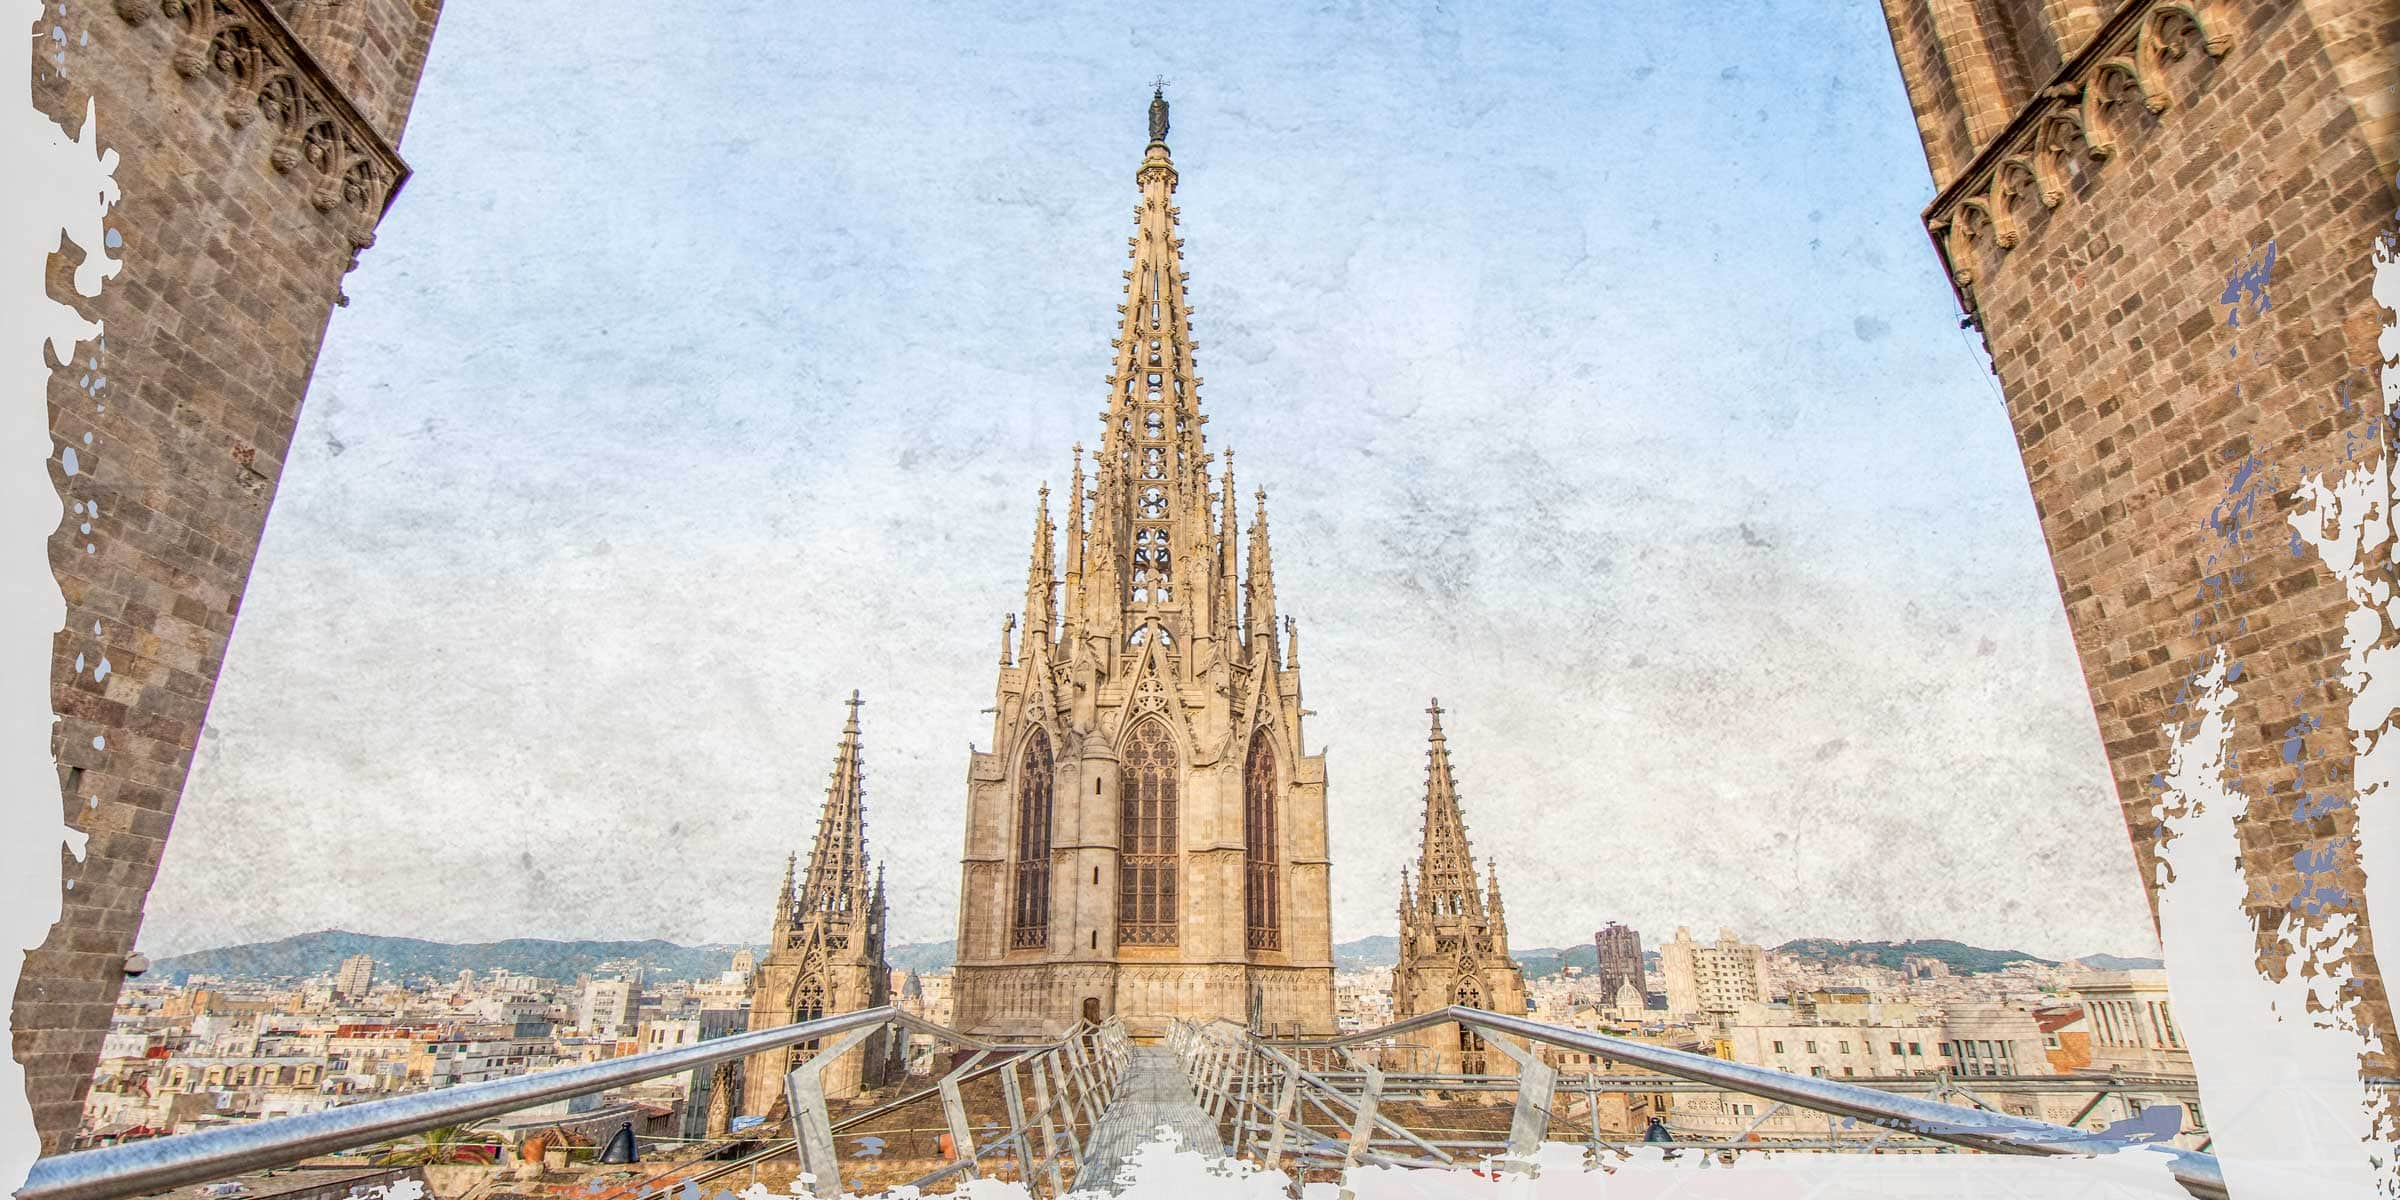 Barcelona facts and photos